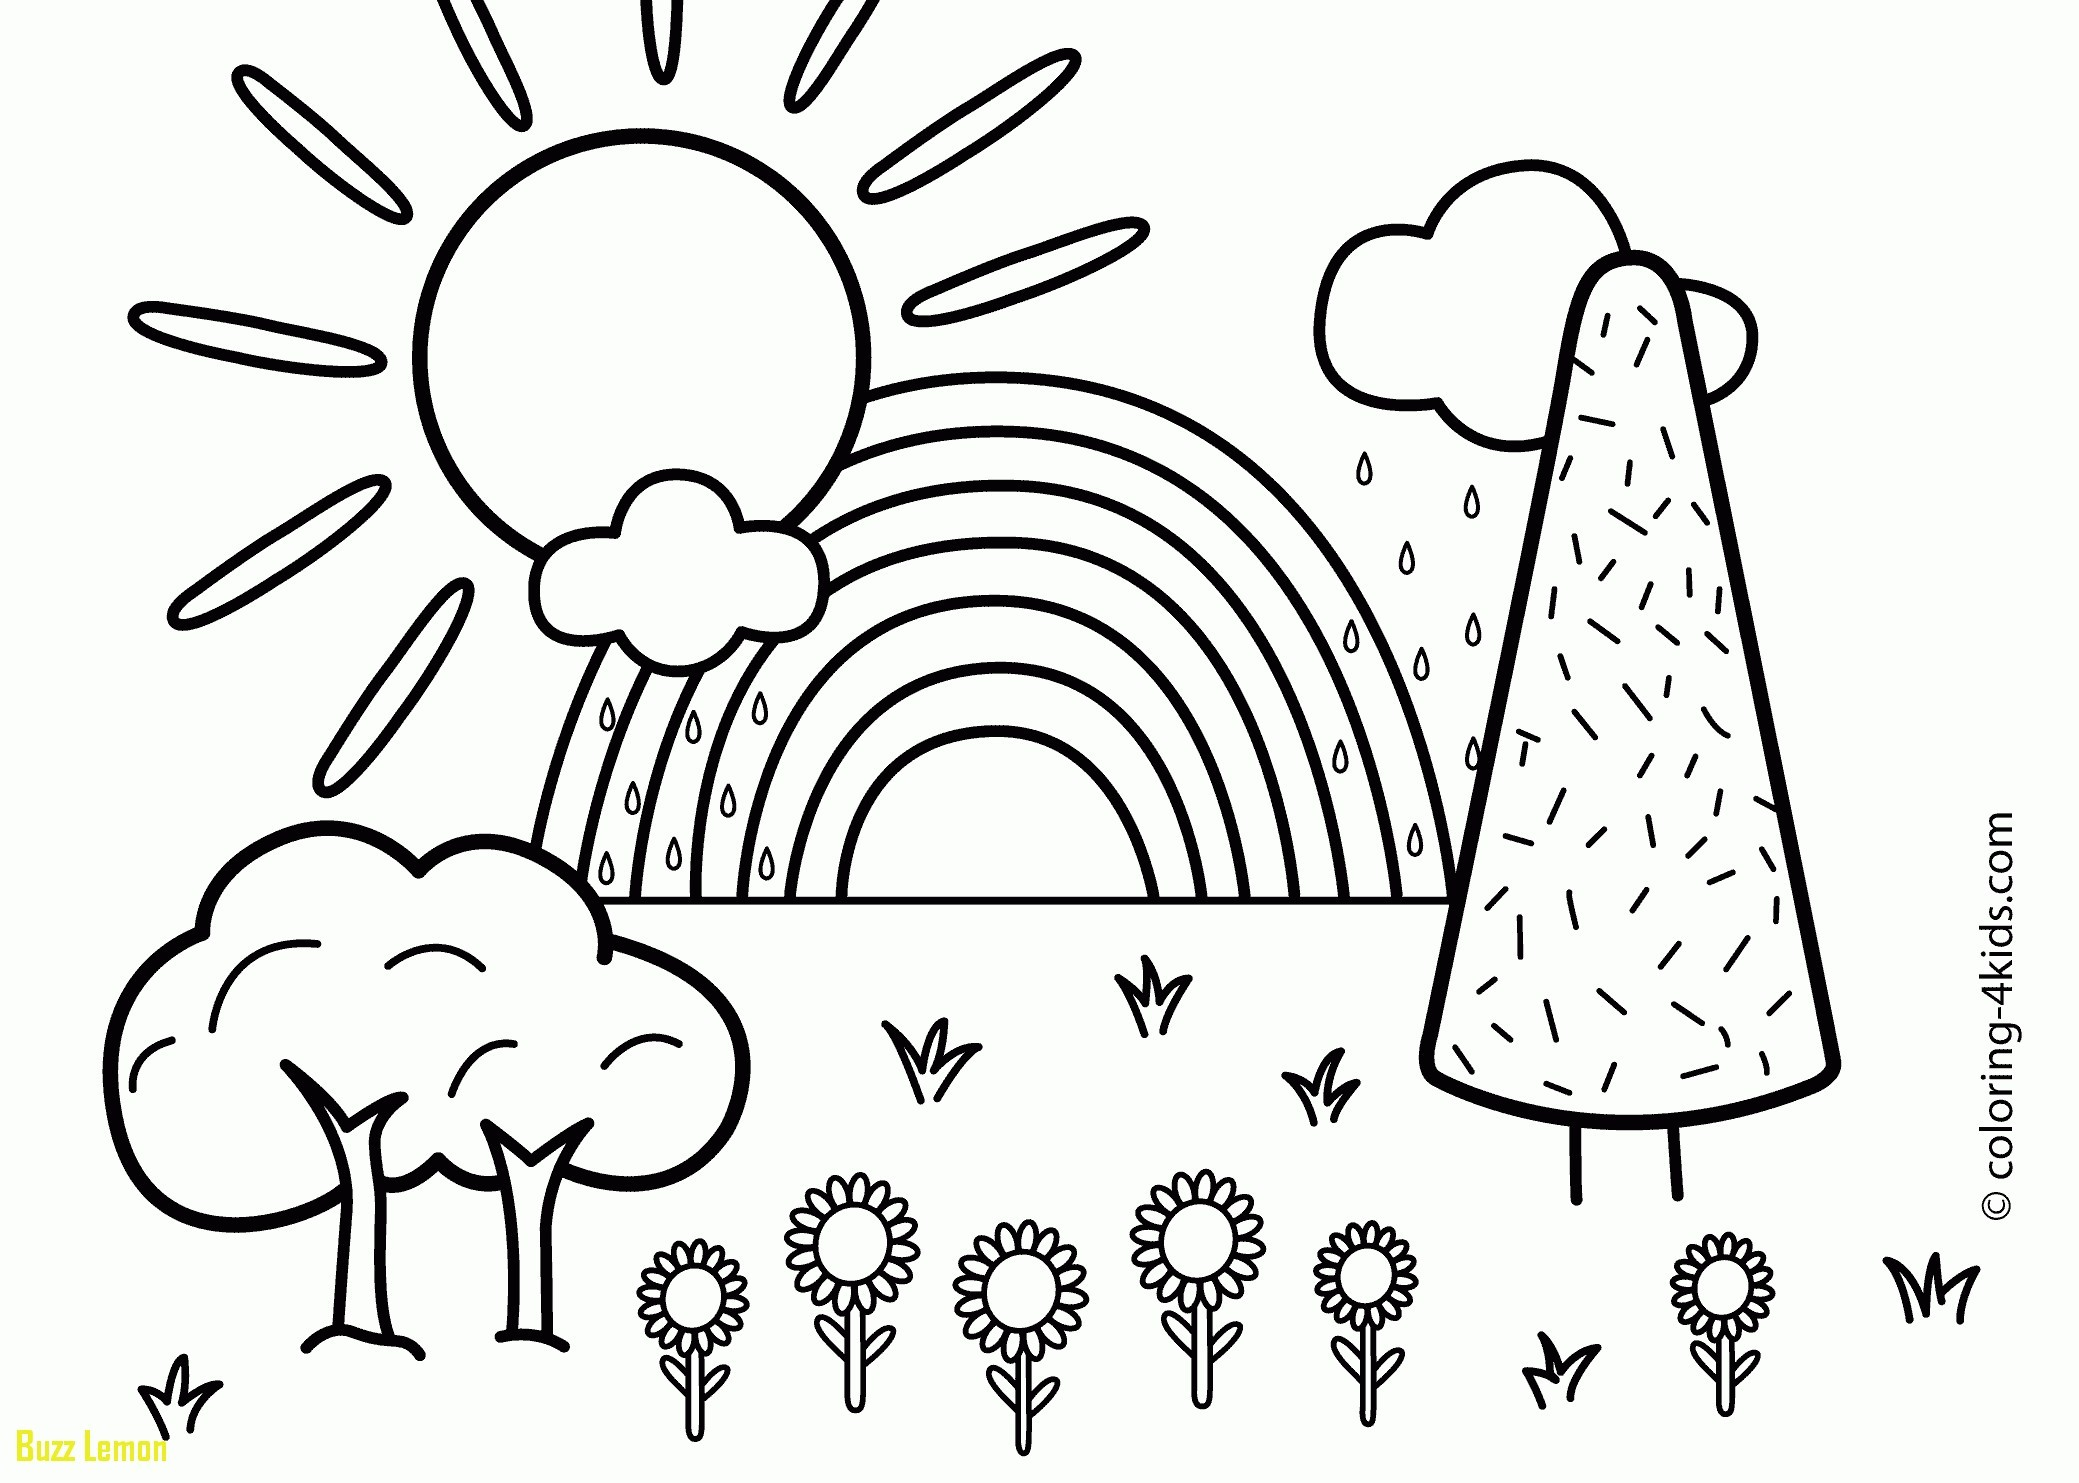 2079x1483 Drawing Pictures For Kids New Drawing For Kids New Timely Rainbow